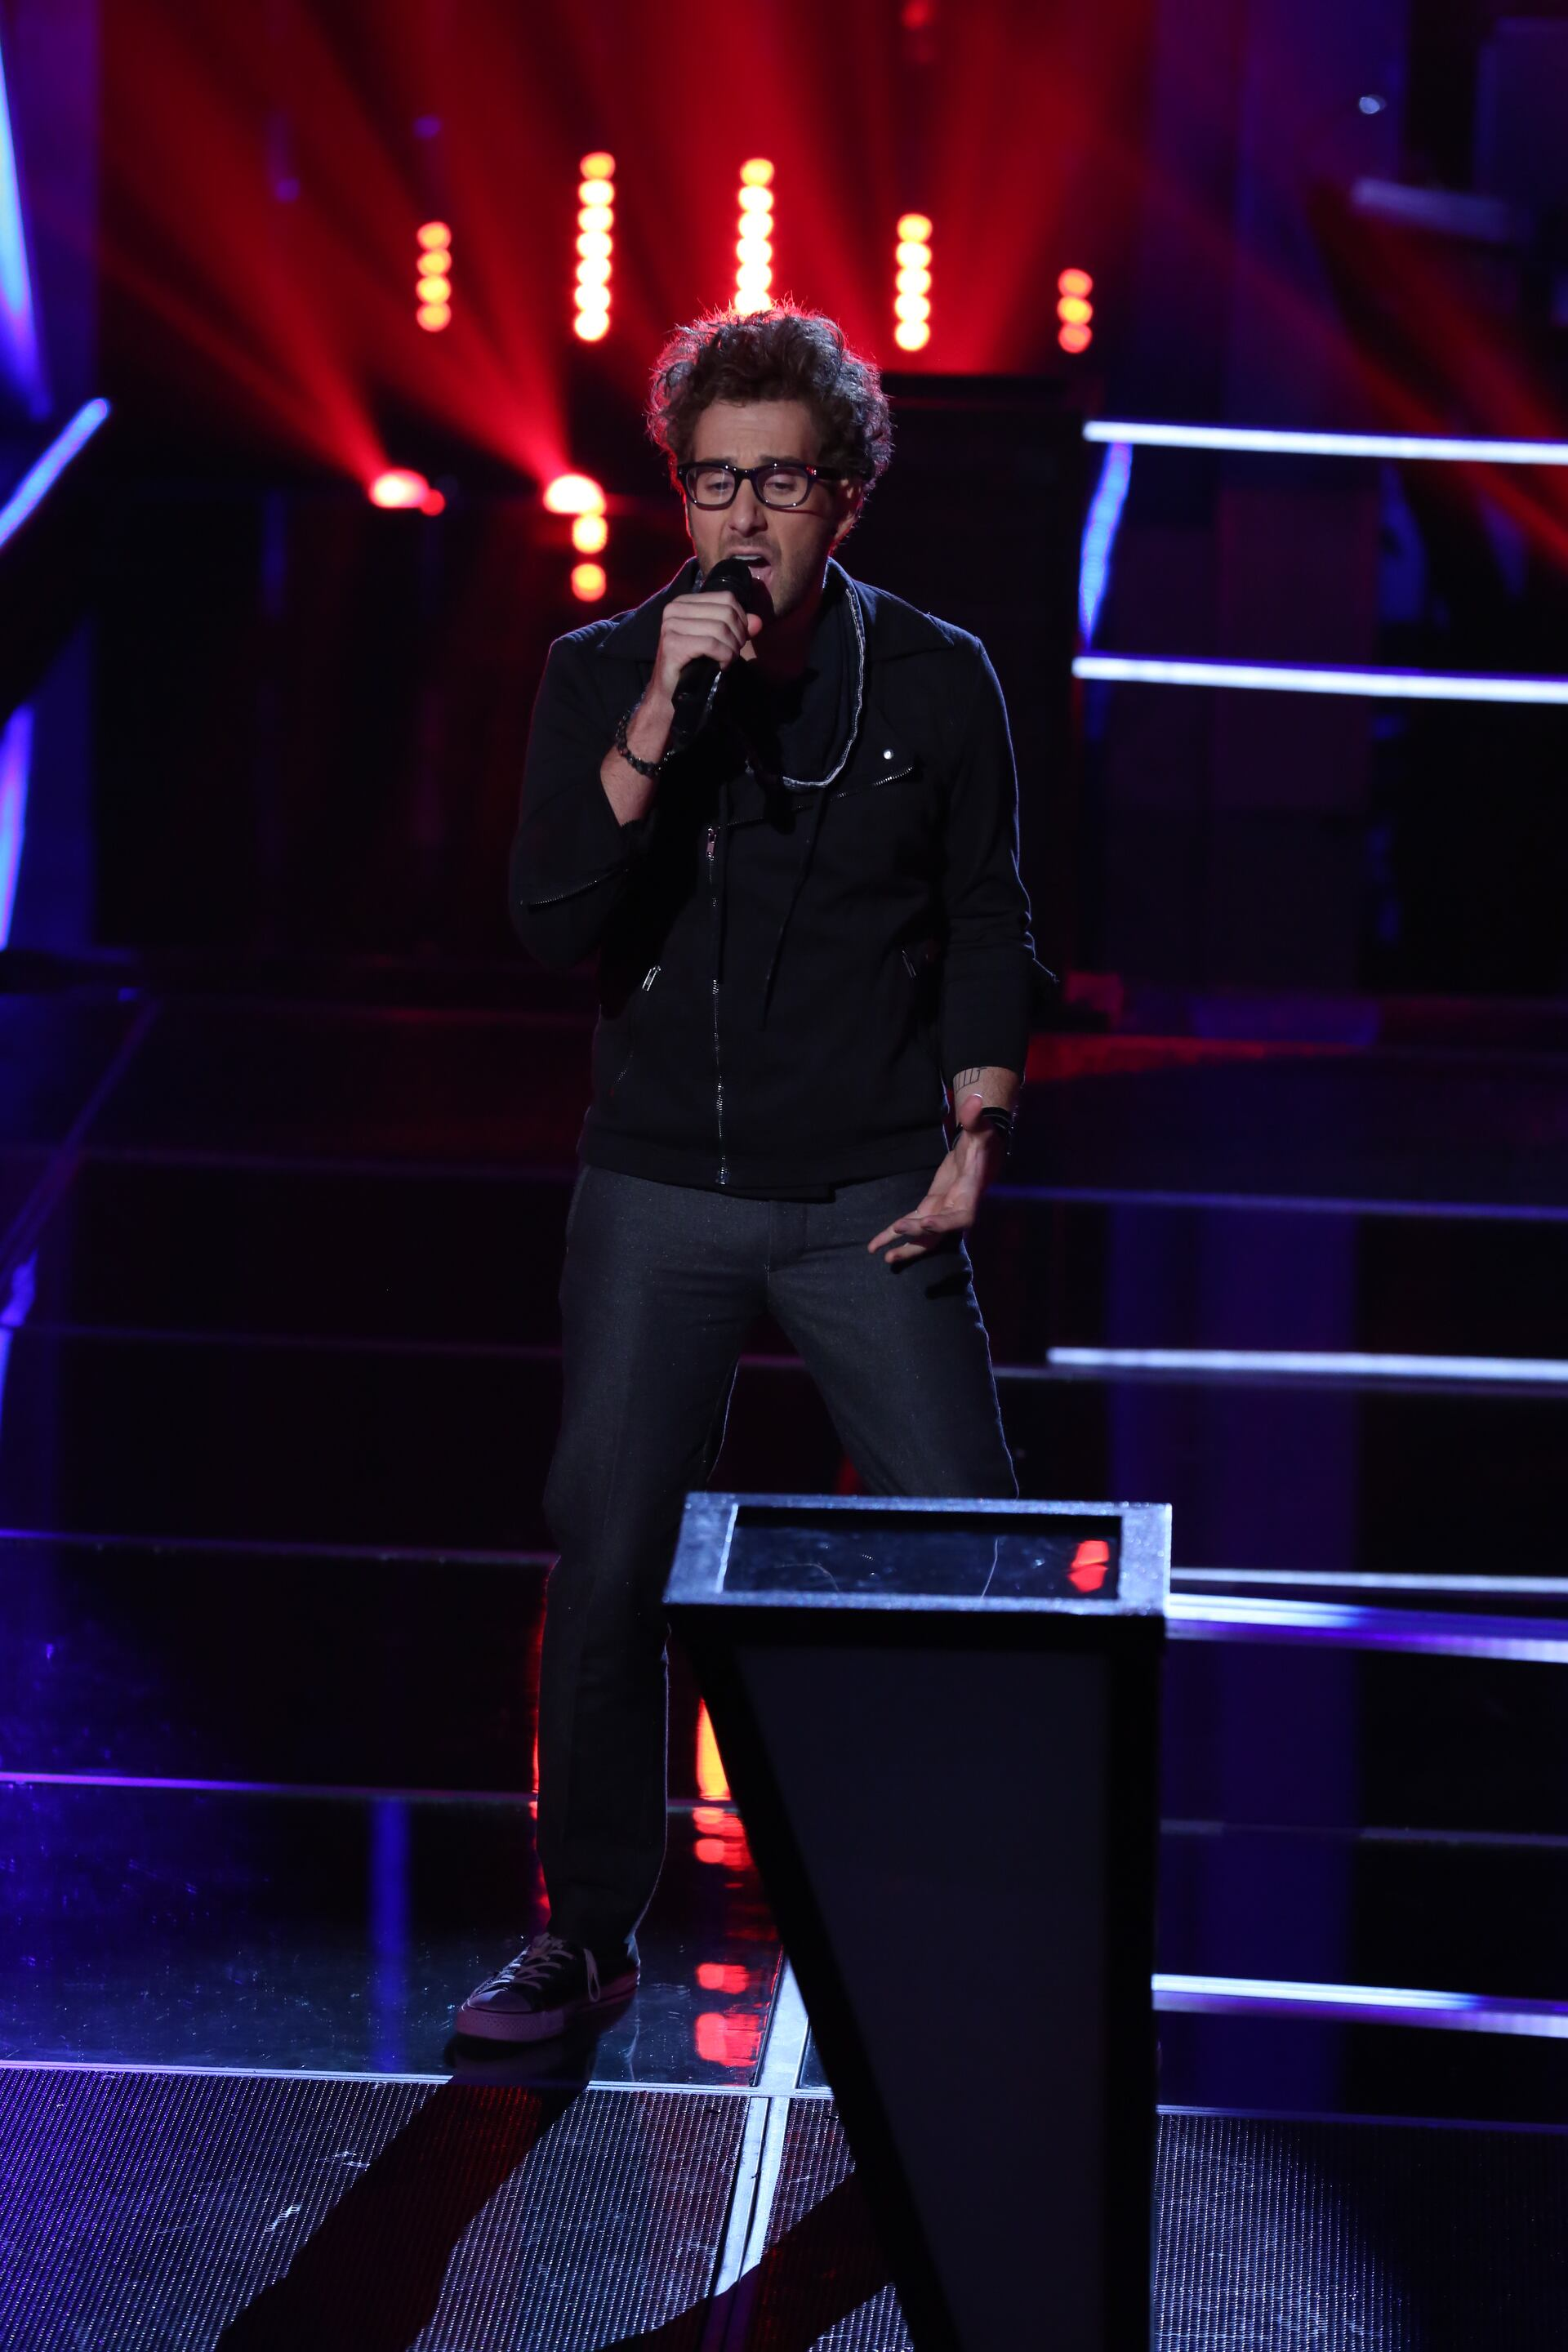 """Will took on James Wolpert in the battle rounds, singing Imagine Dragon's """"Radioactive."""" Adam was pleasantly surprised by Will's strength but still chose James as the winner, opening the door for Christina to swoop in and steal Will for her team."""